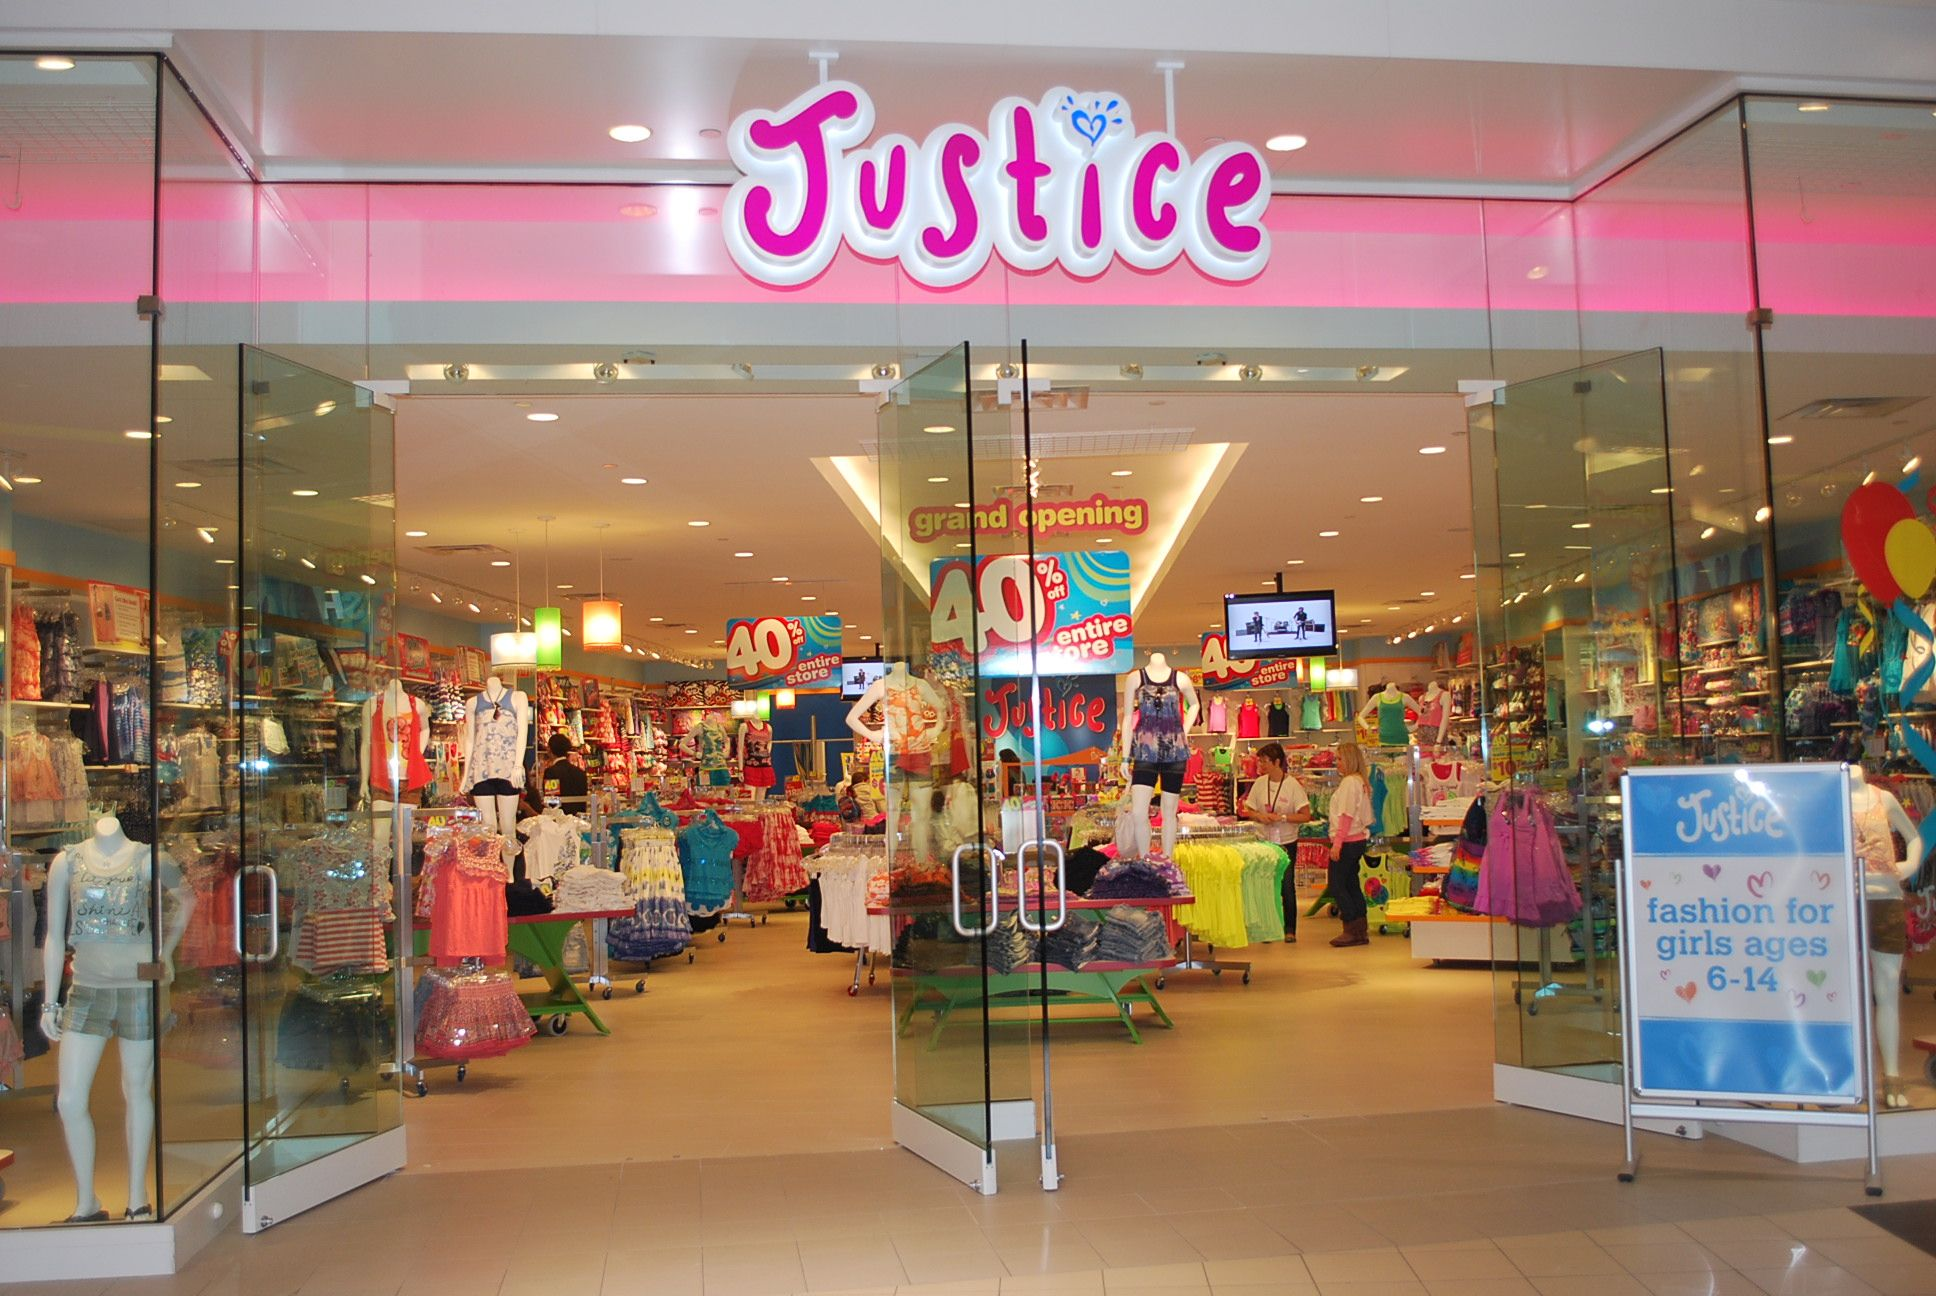 Learn More About shopjustice.com